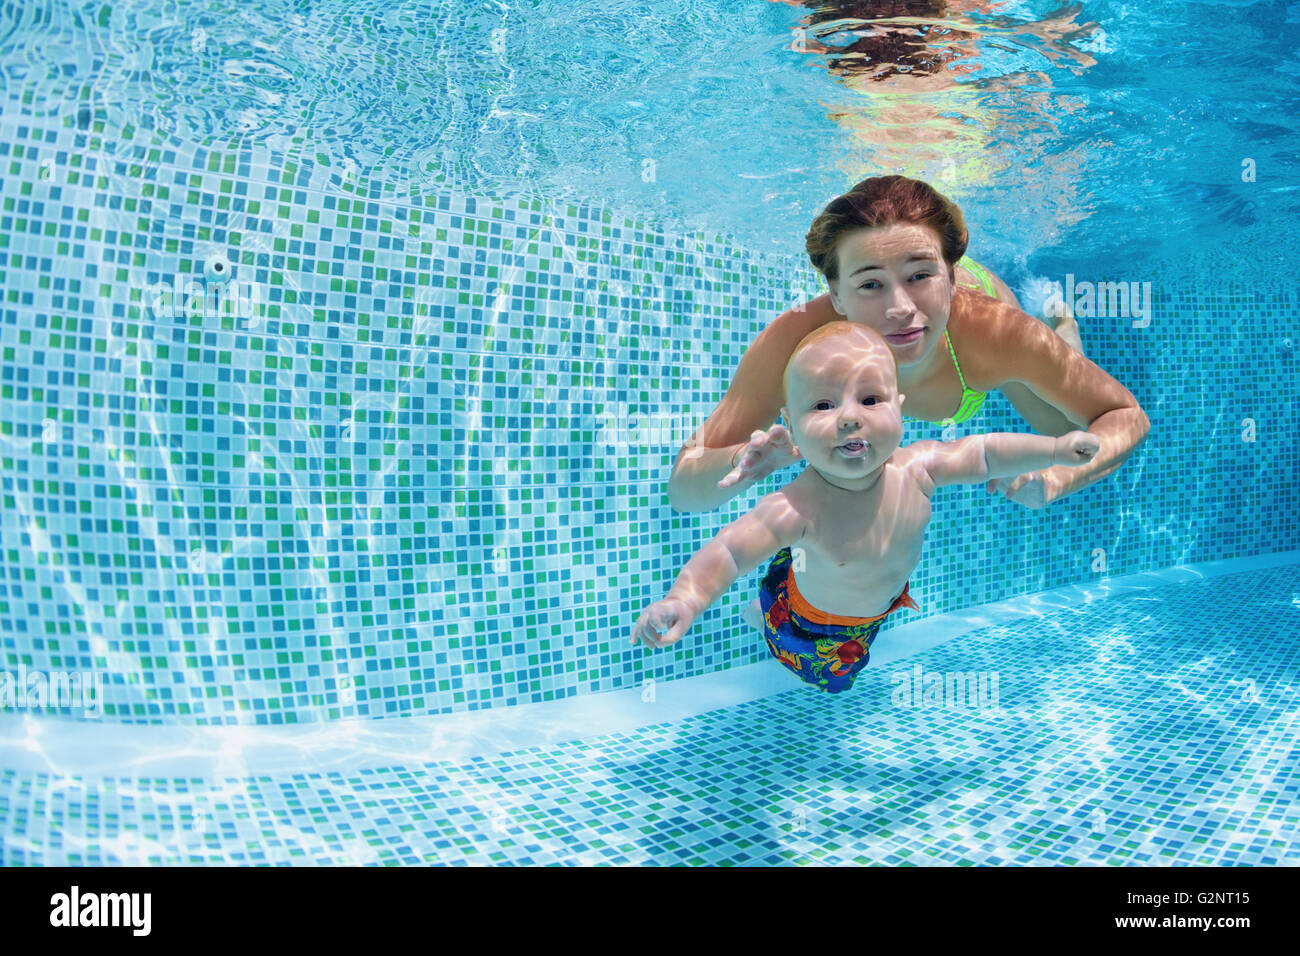 Child swimming lesson - baby with mother learn to swim, dive underwater in swimming pool. - Stock Image